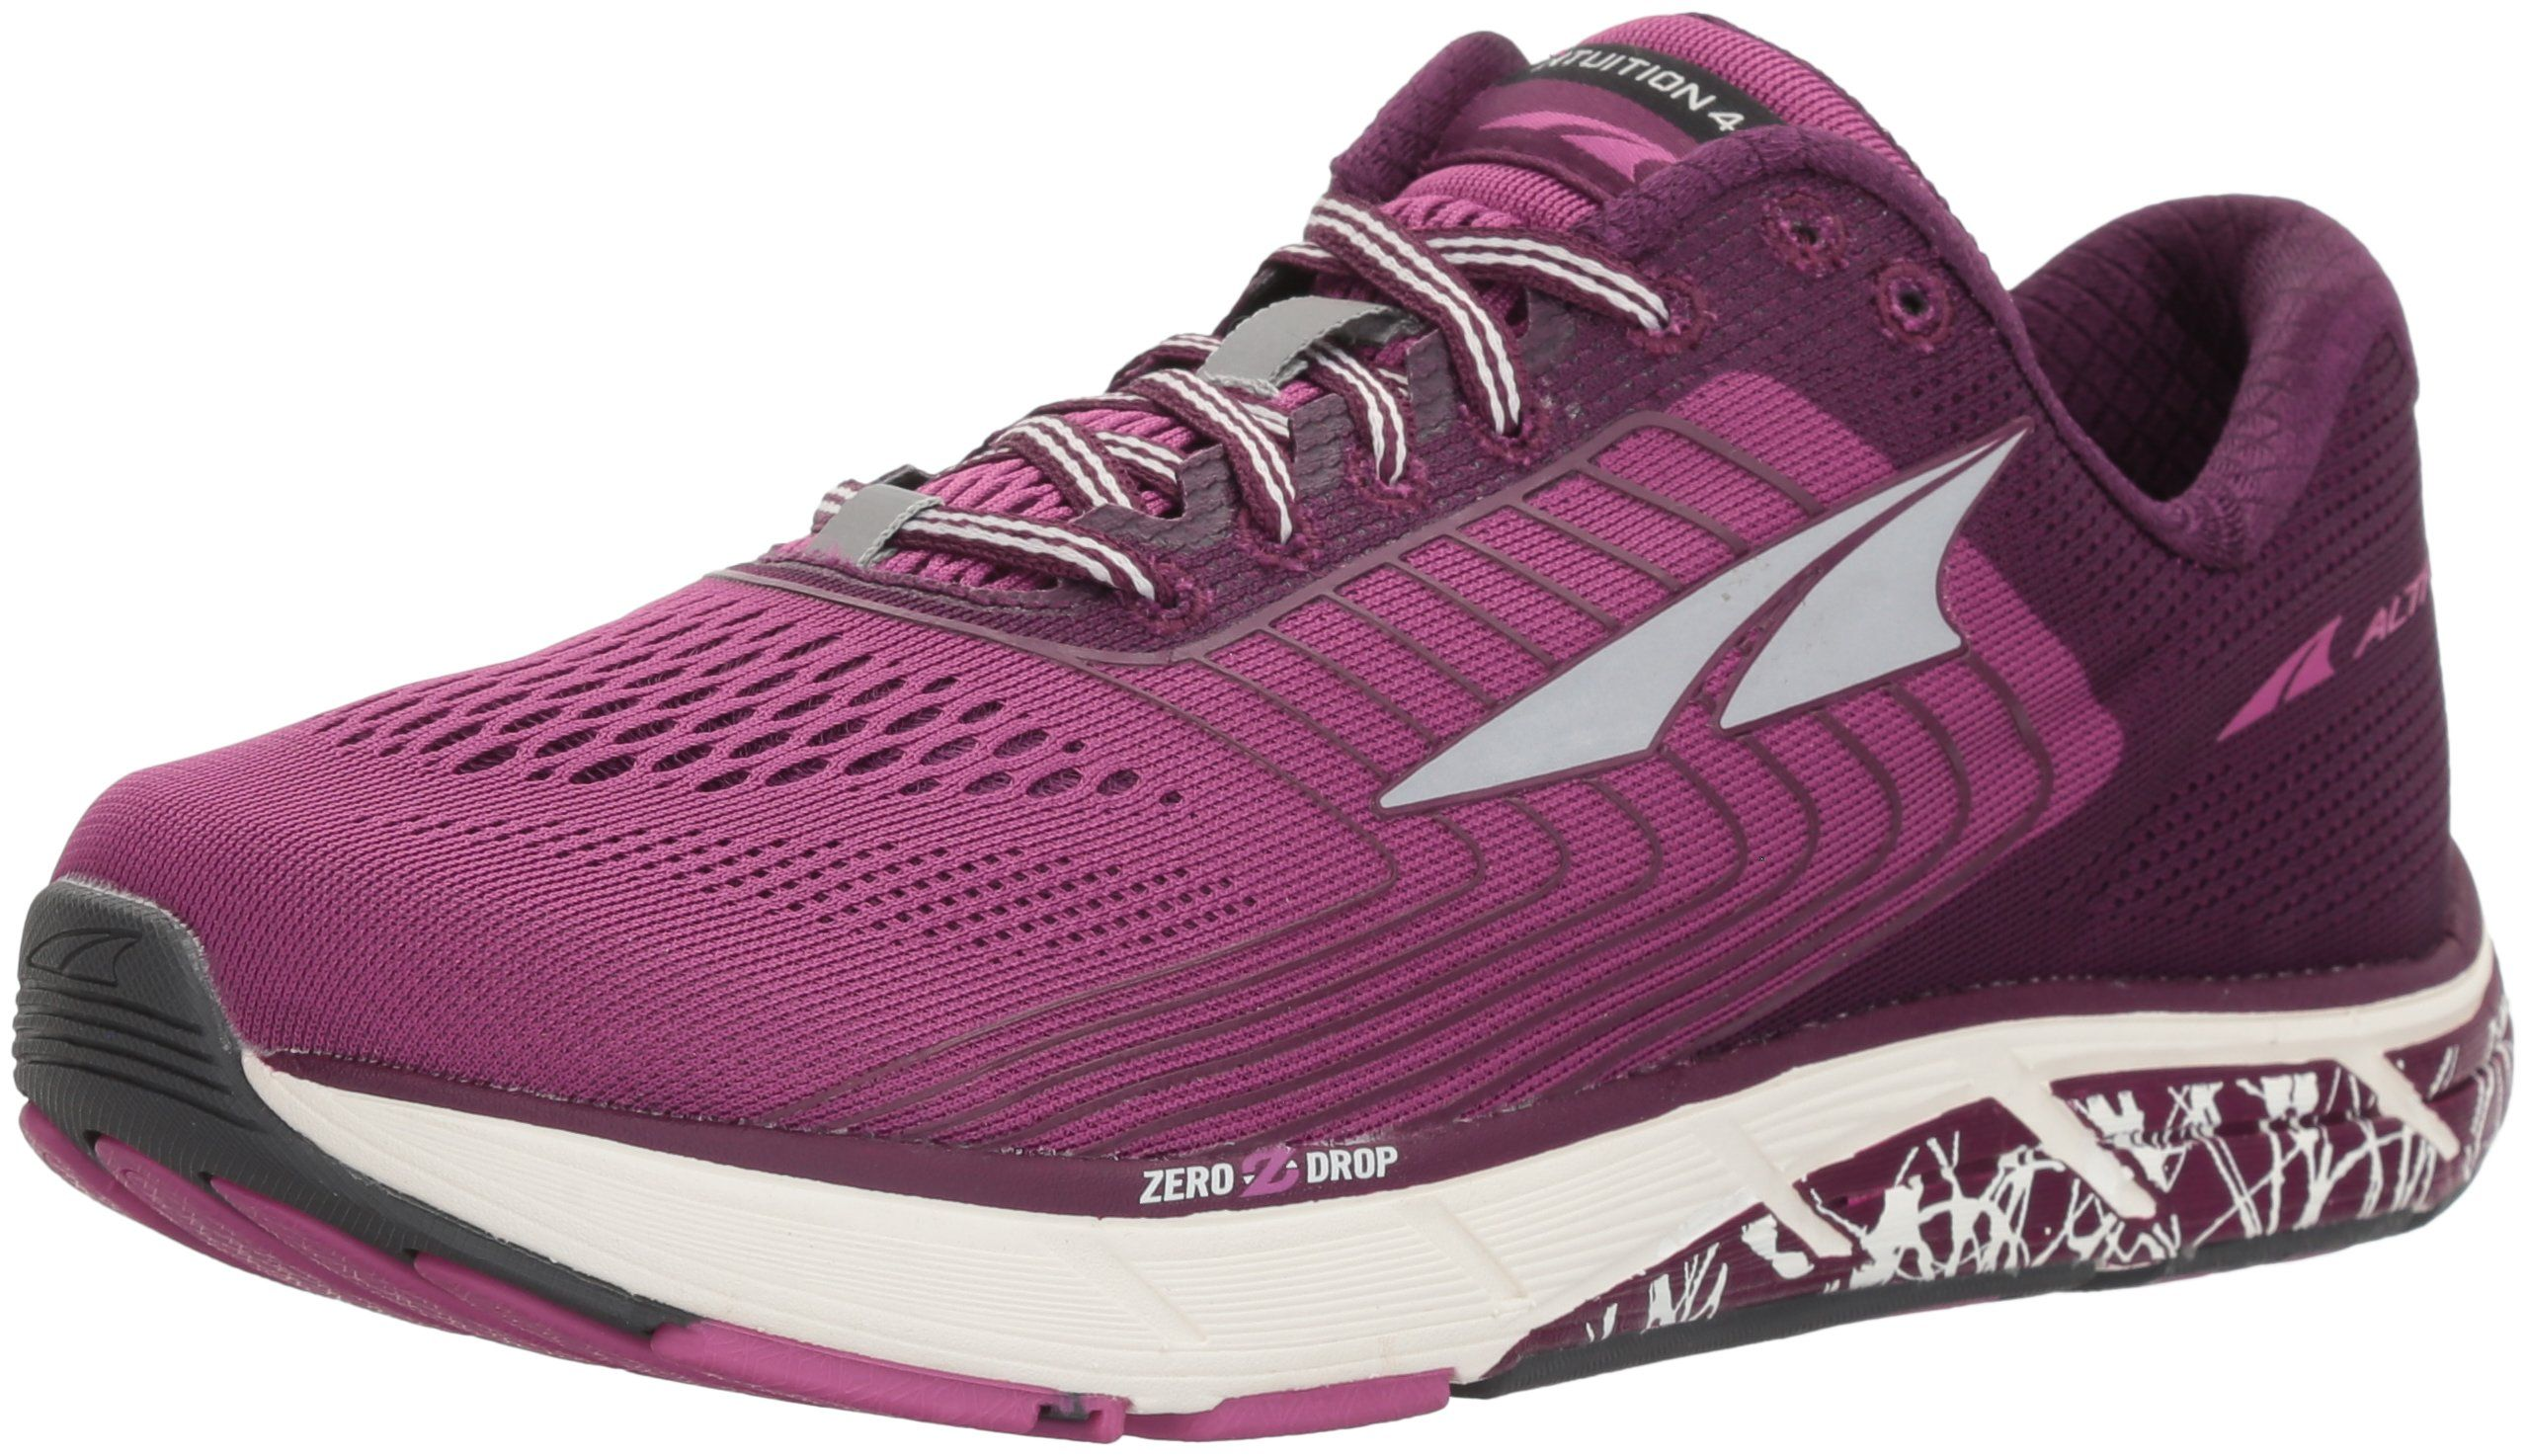 Altra Womens Intuition 4.5 Sneaker Pink